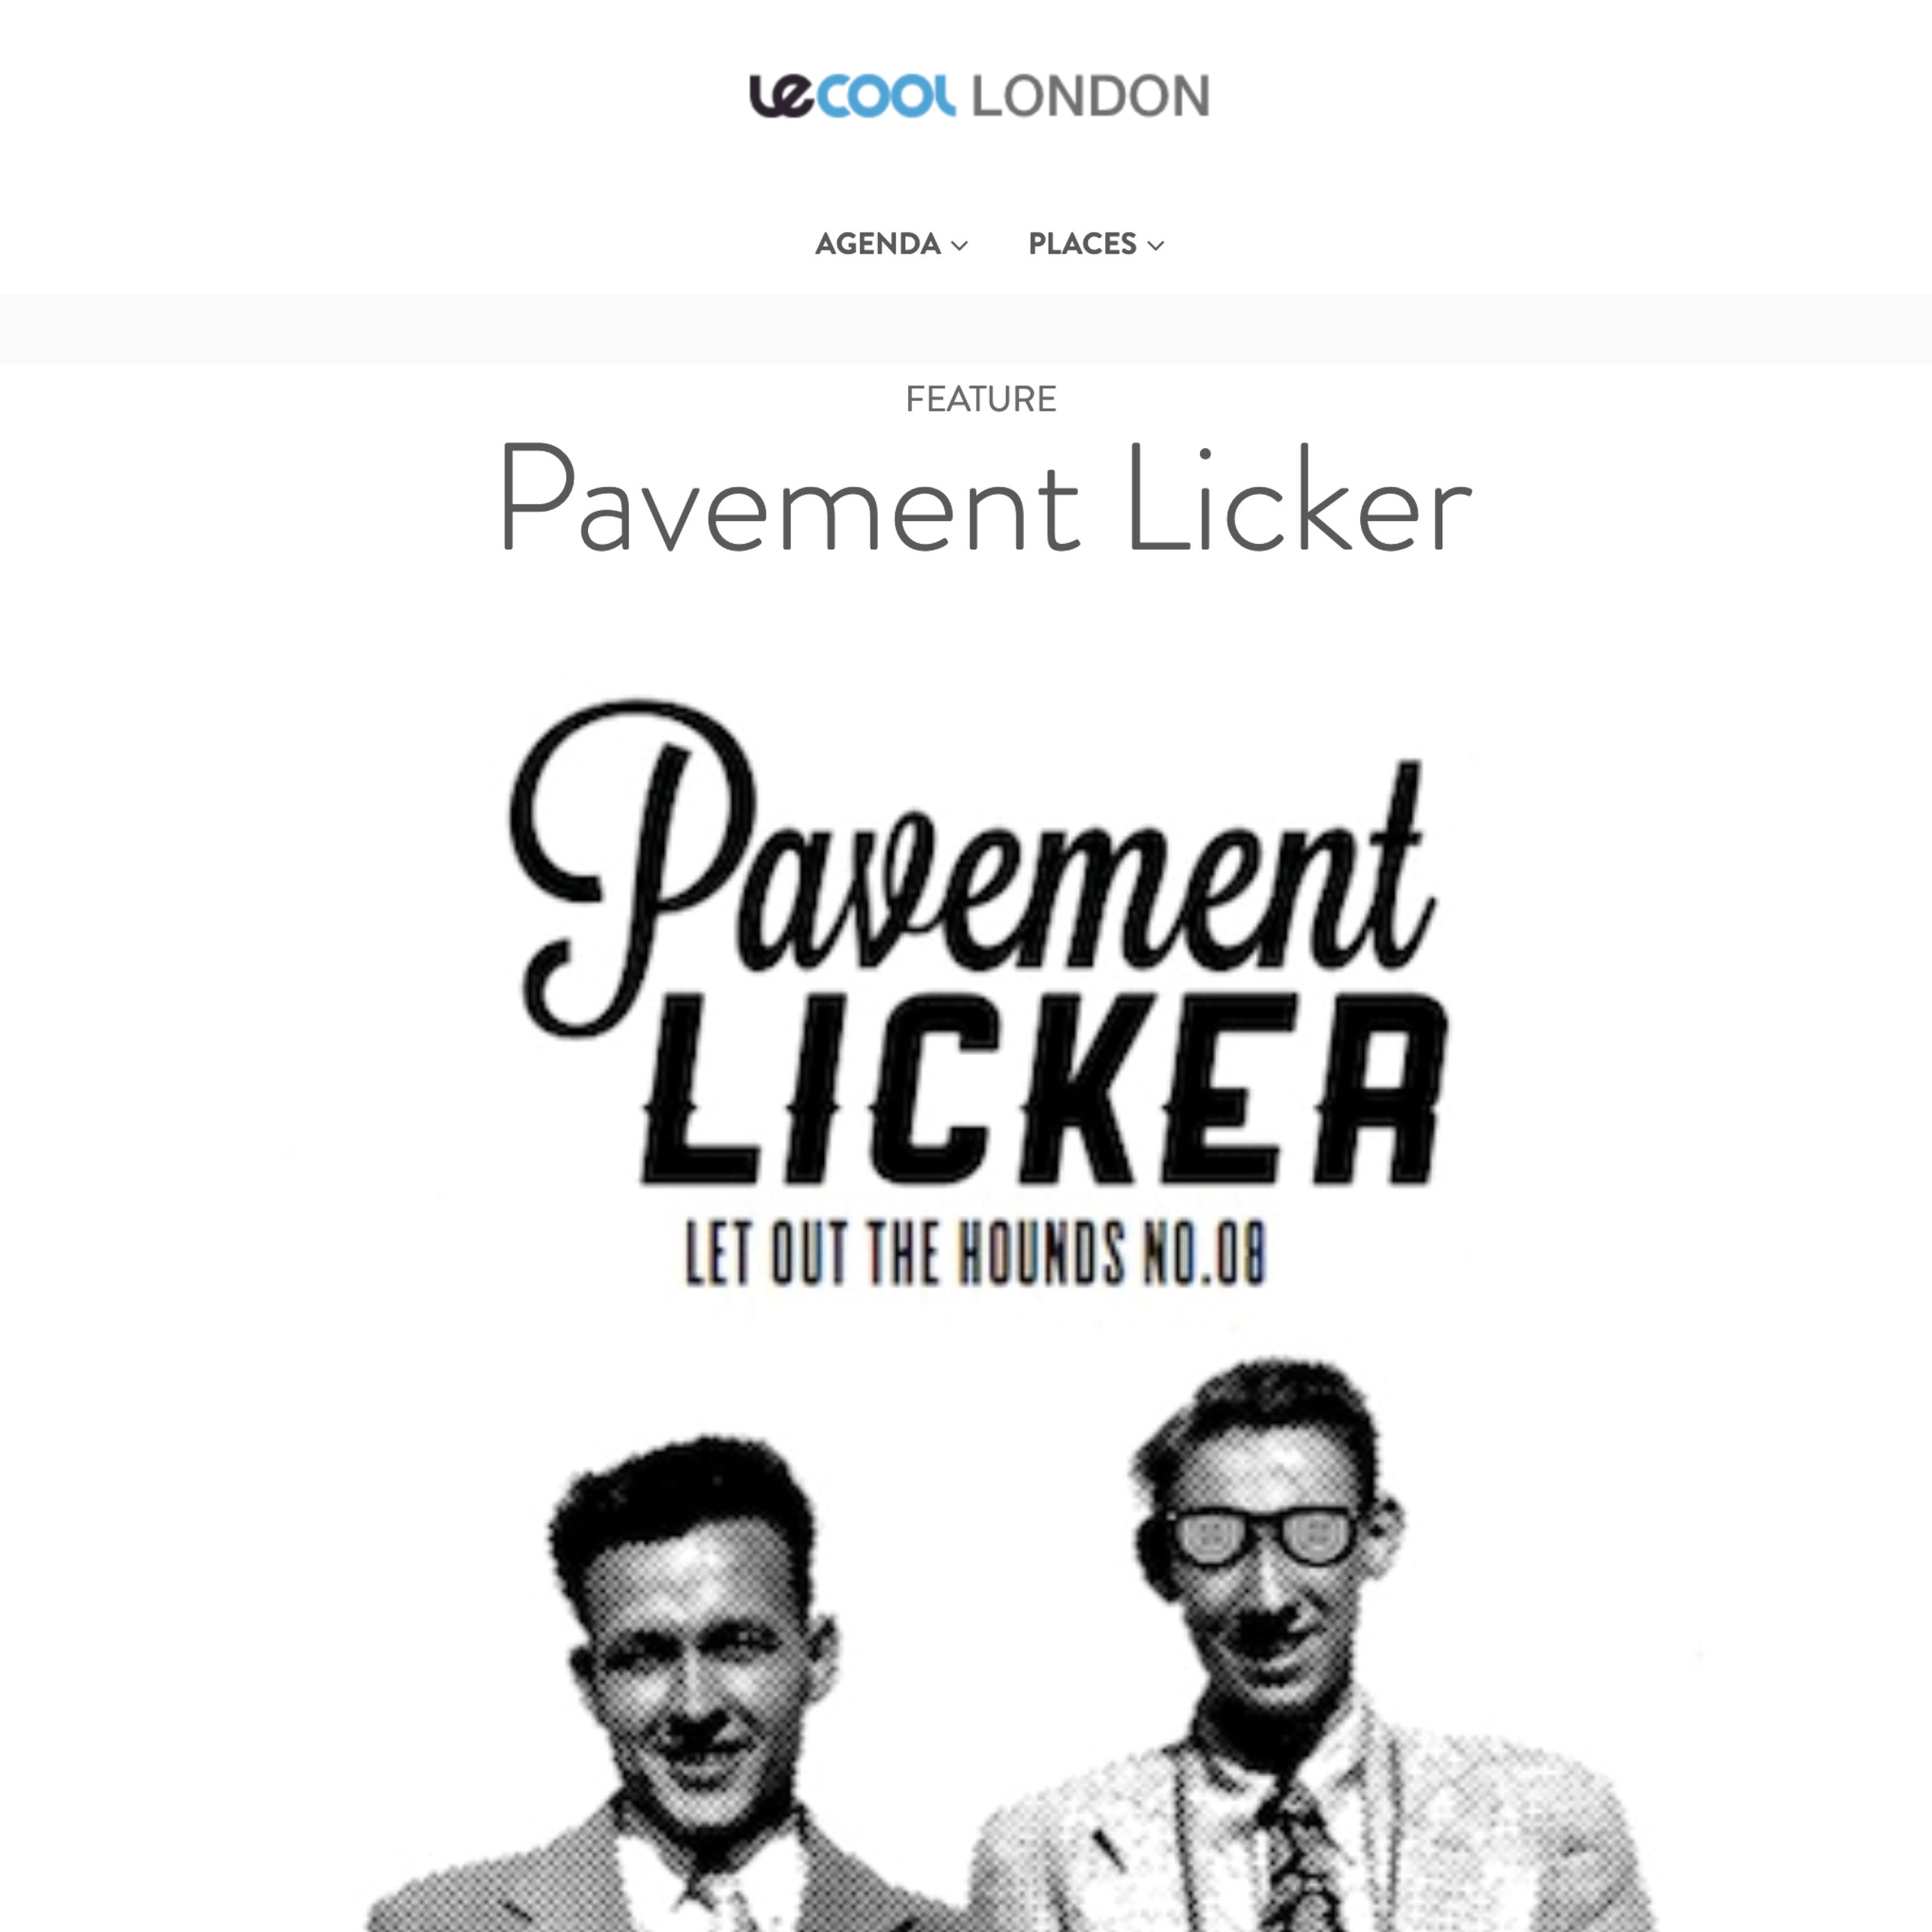 Pavement Licker featured by Le Cool London